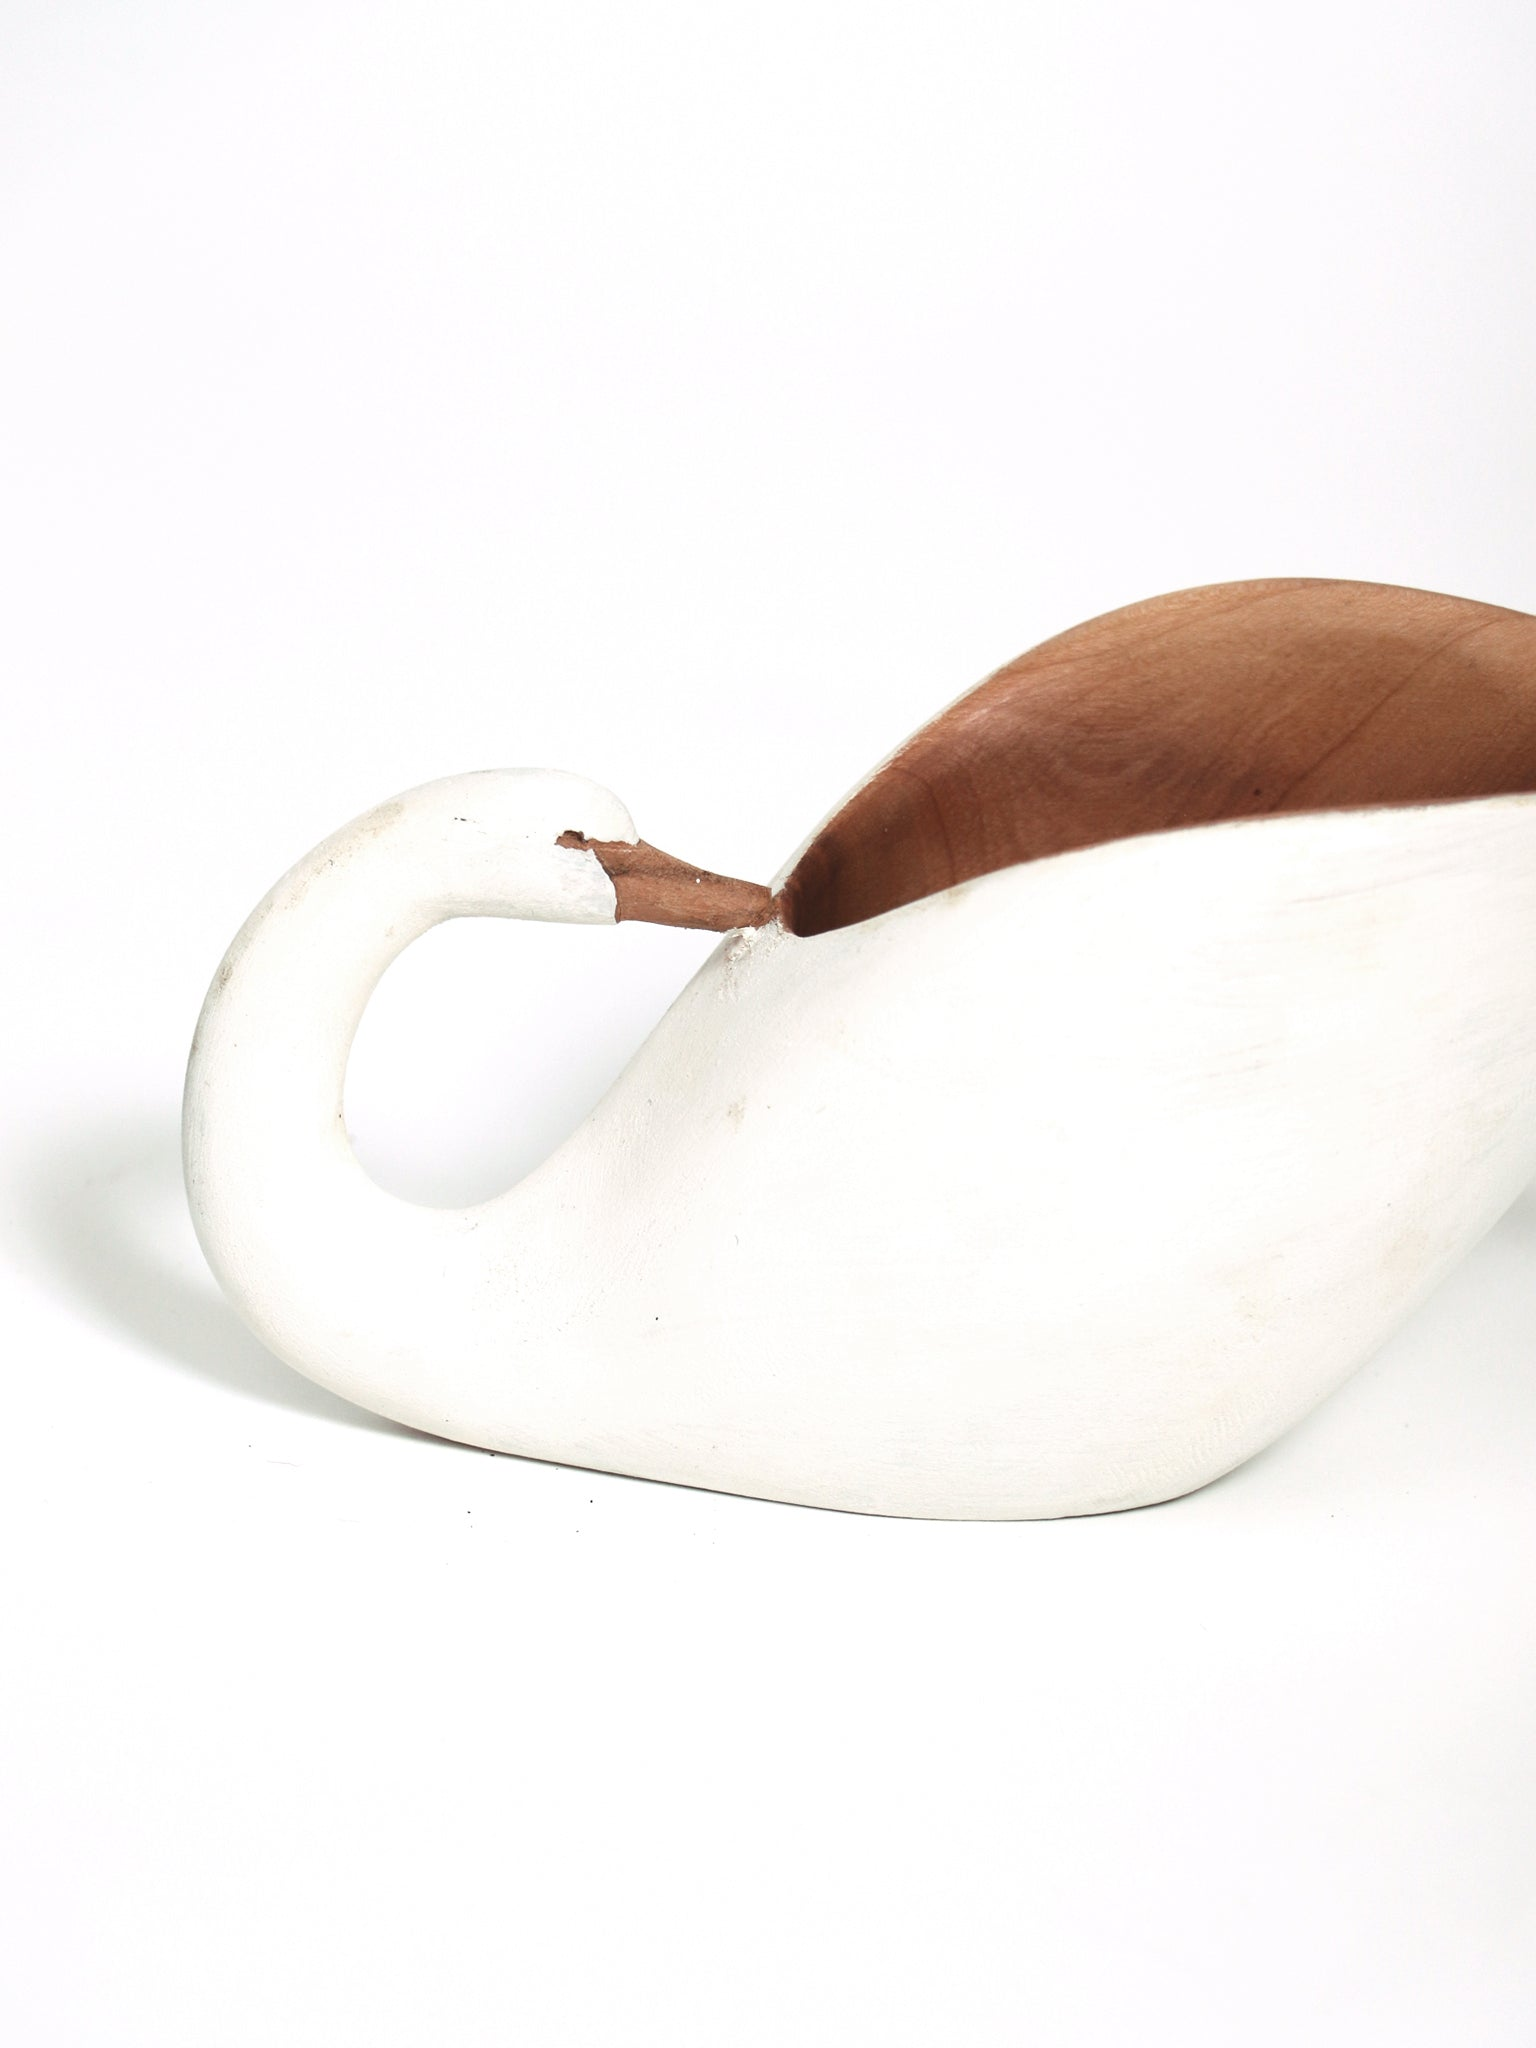 Swan bowl, hand-carved wood